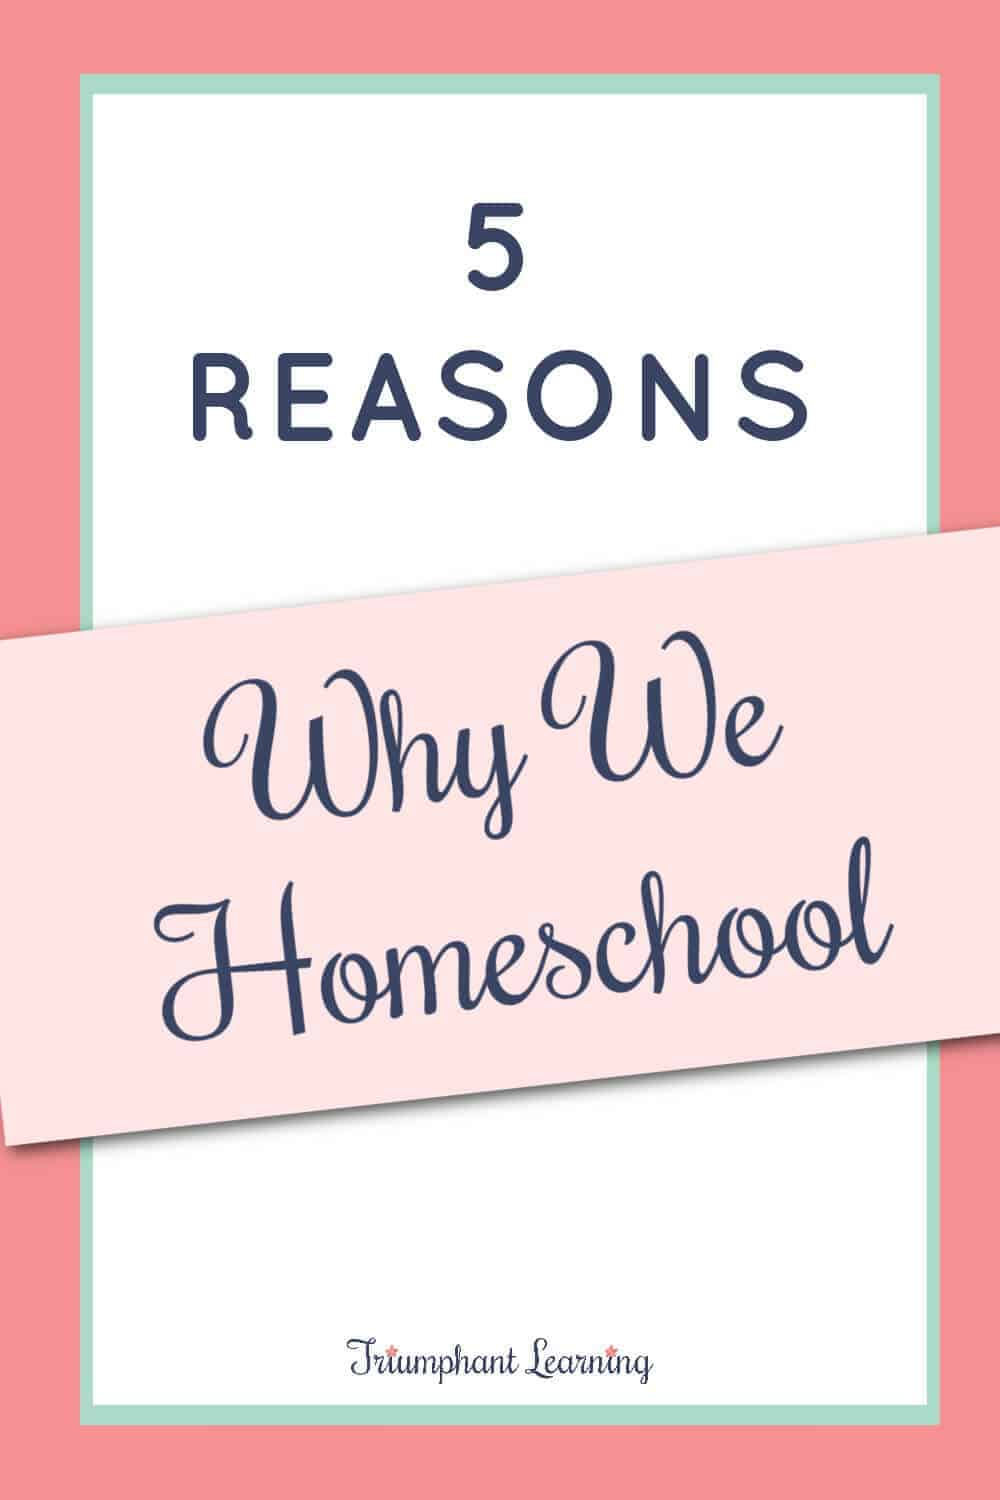 Having a clear vision of why you homeschool helps you persevere through challenges. Here are five reasons why we homeschool. via @TriLearning